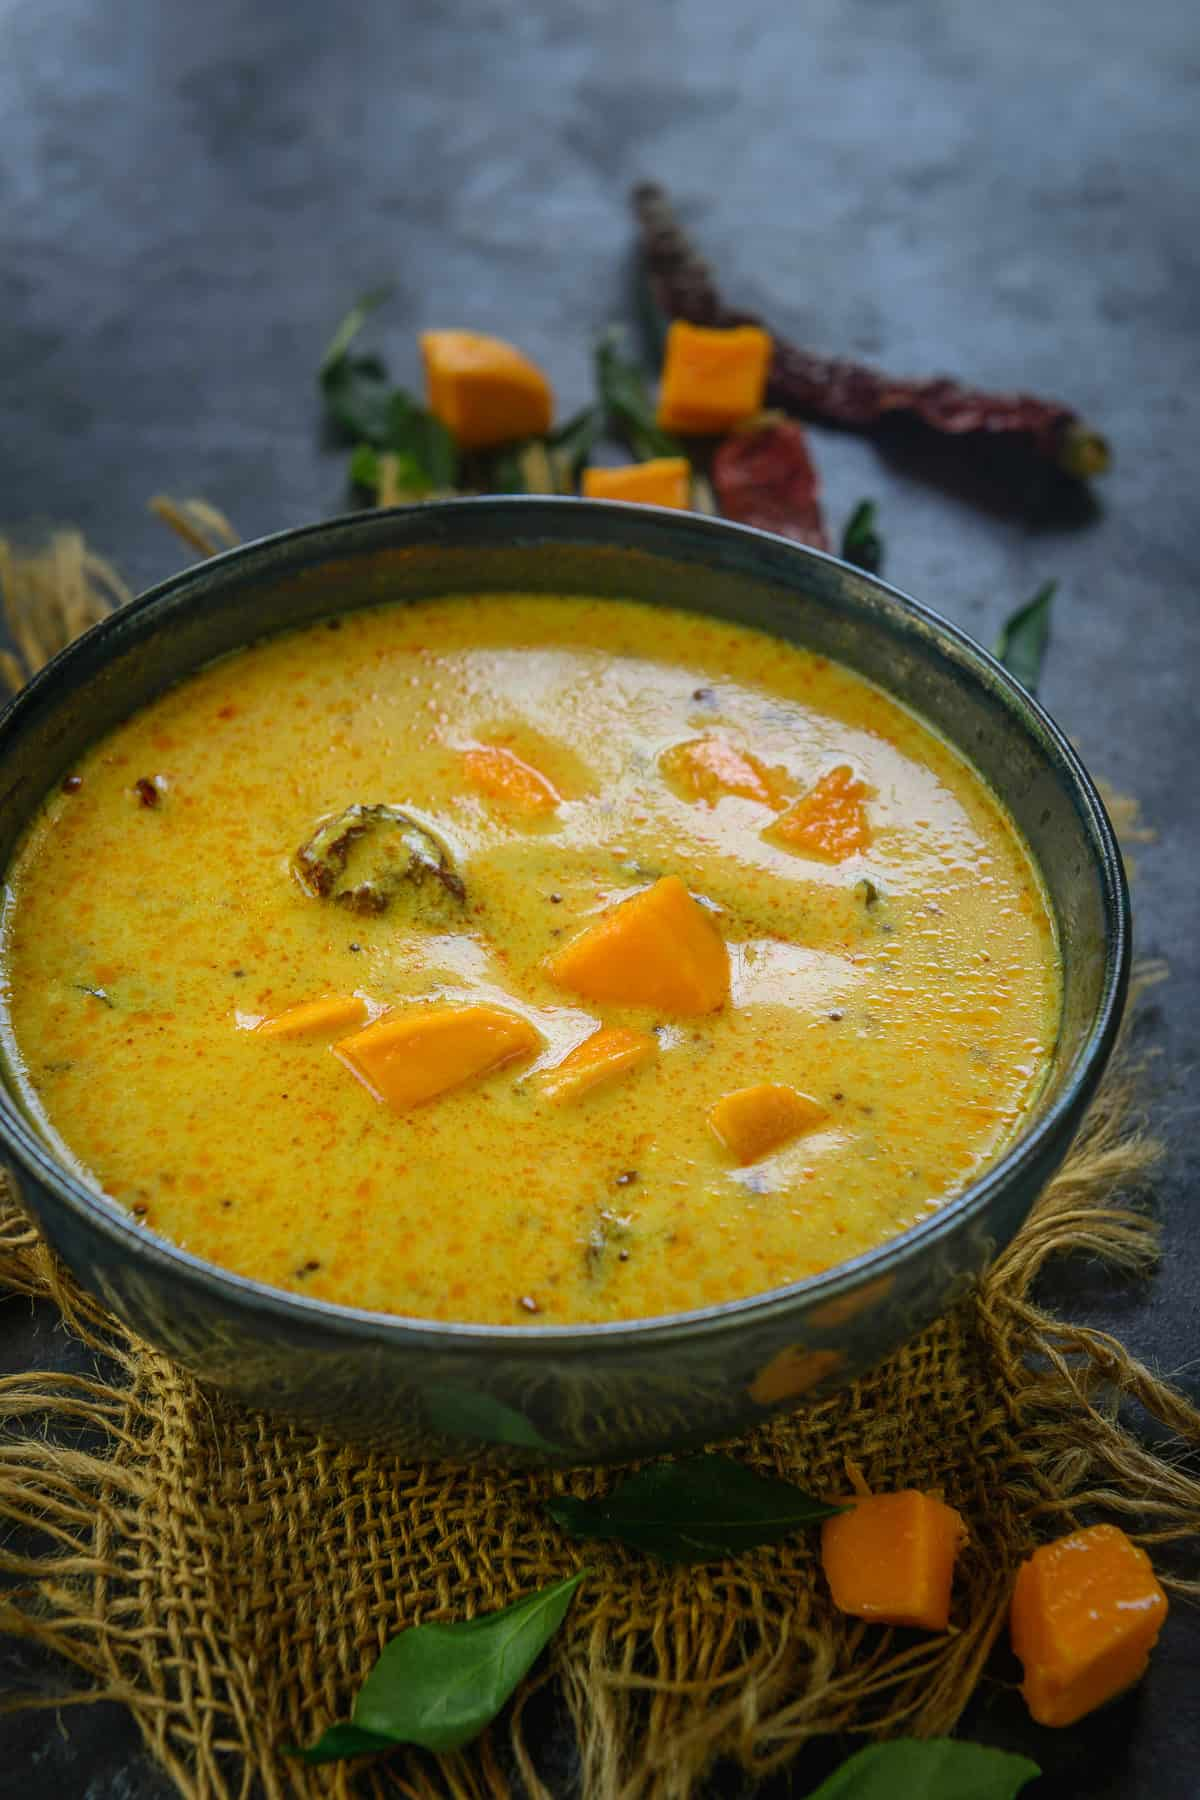 Fajeto or mango kadhi served in a bowl.